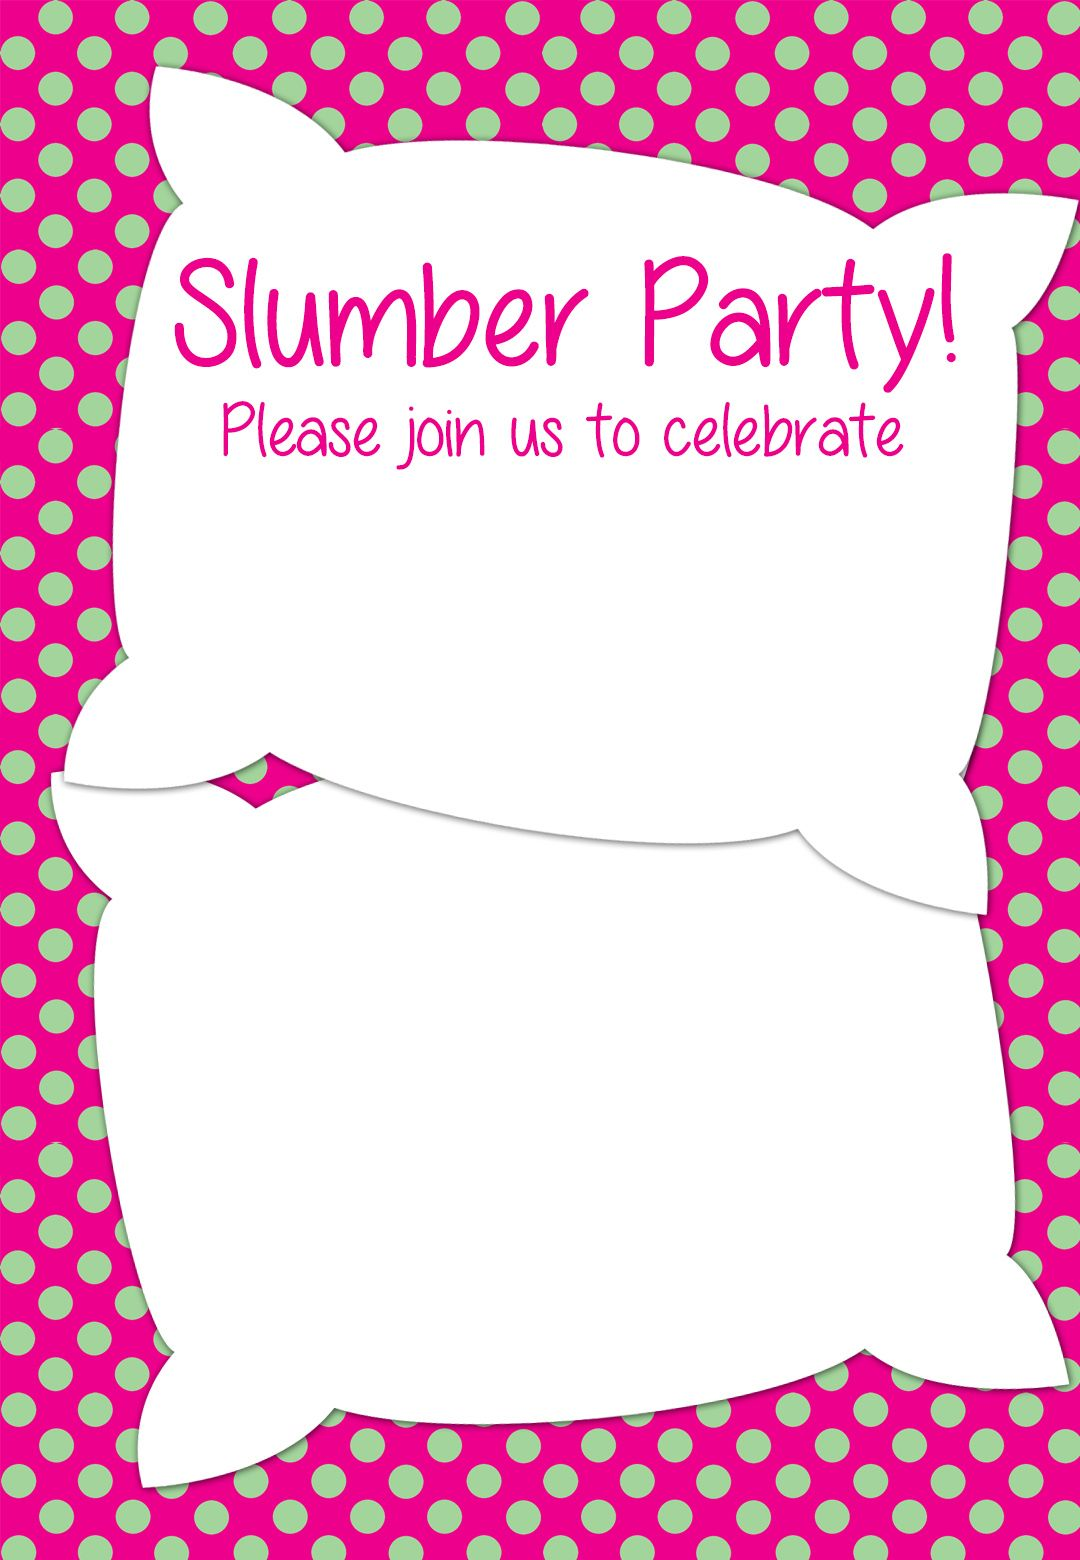 Free Printable Slumber Party Invitation Party ideas Pinterest